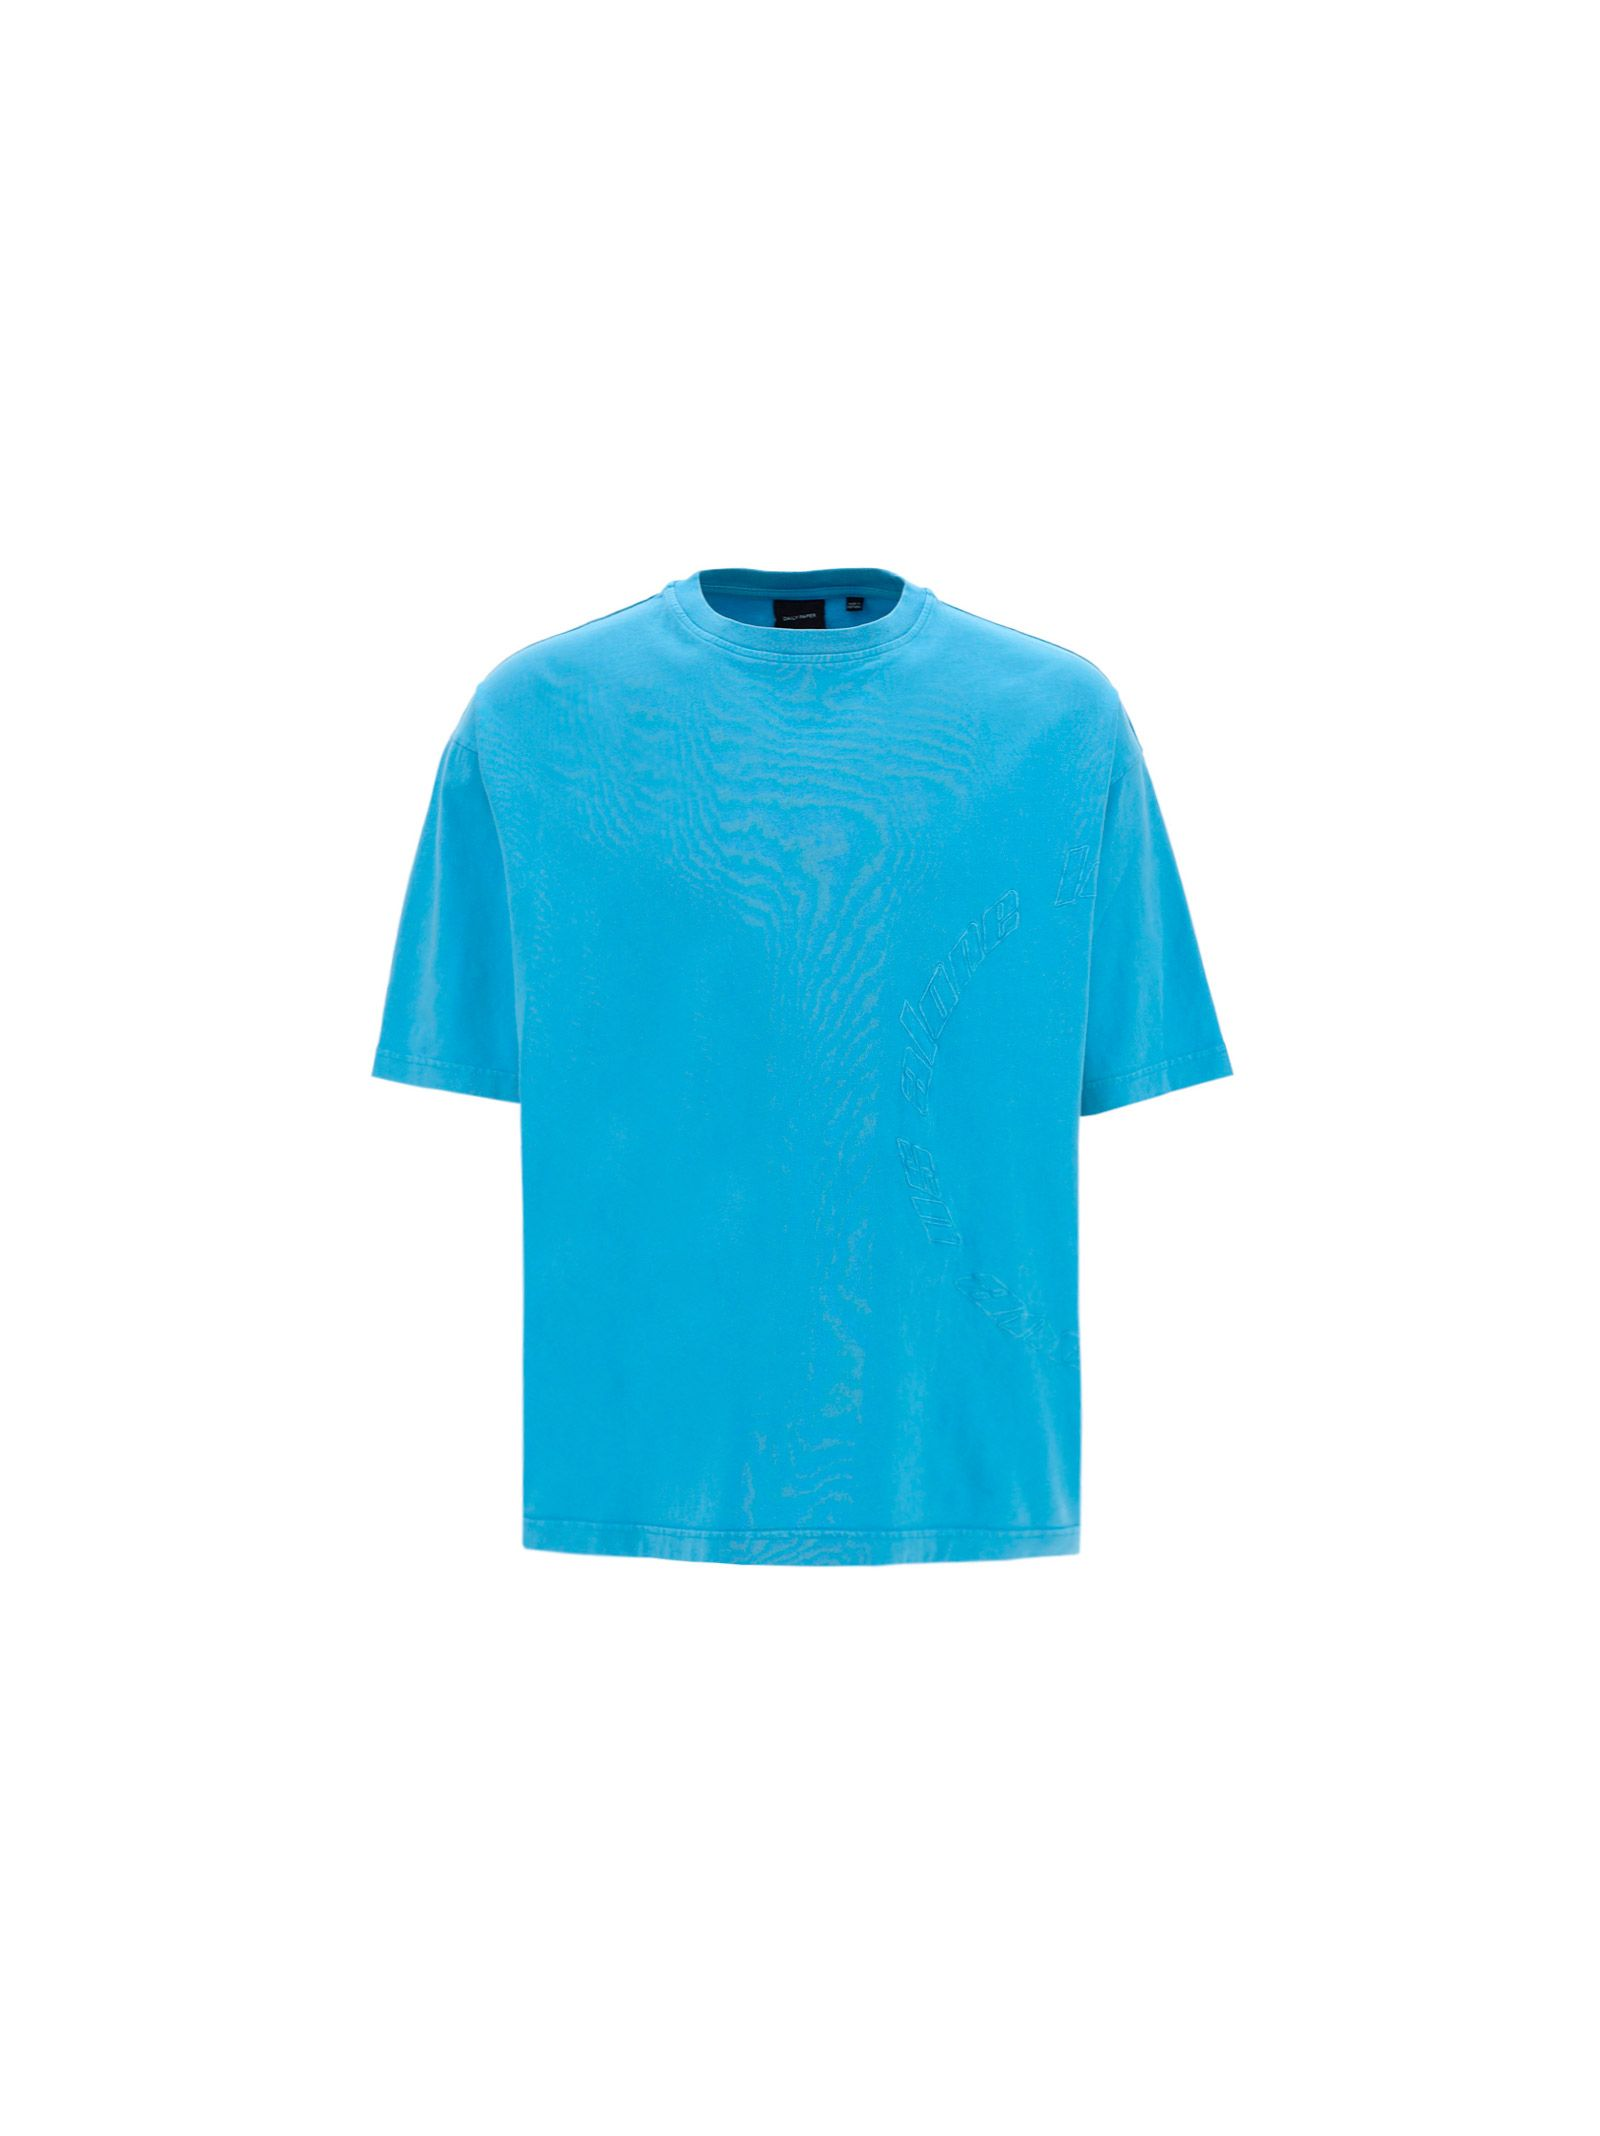 Daily Paper Cottons DAILY PAPER MEN'S 2111103BLUE LIGHT BLUE OTHER MATERIALS T-SHIRT